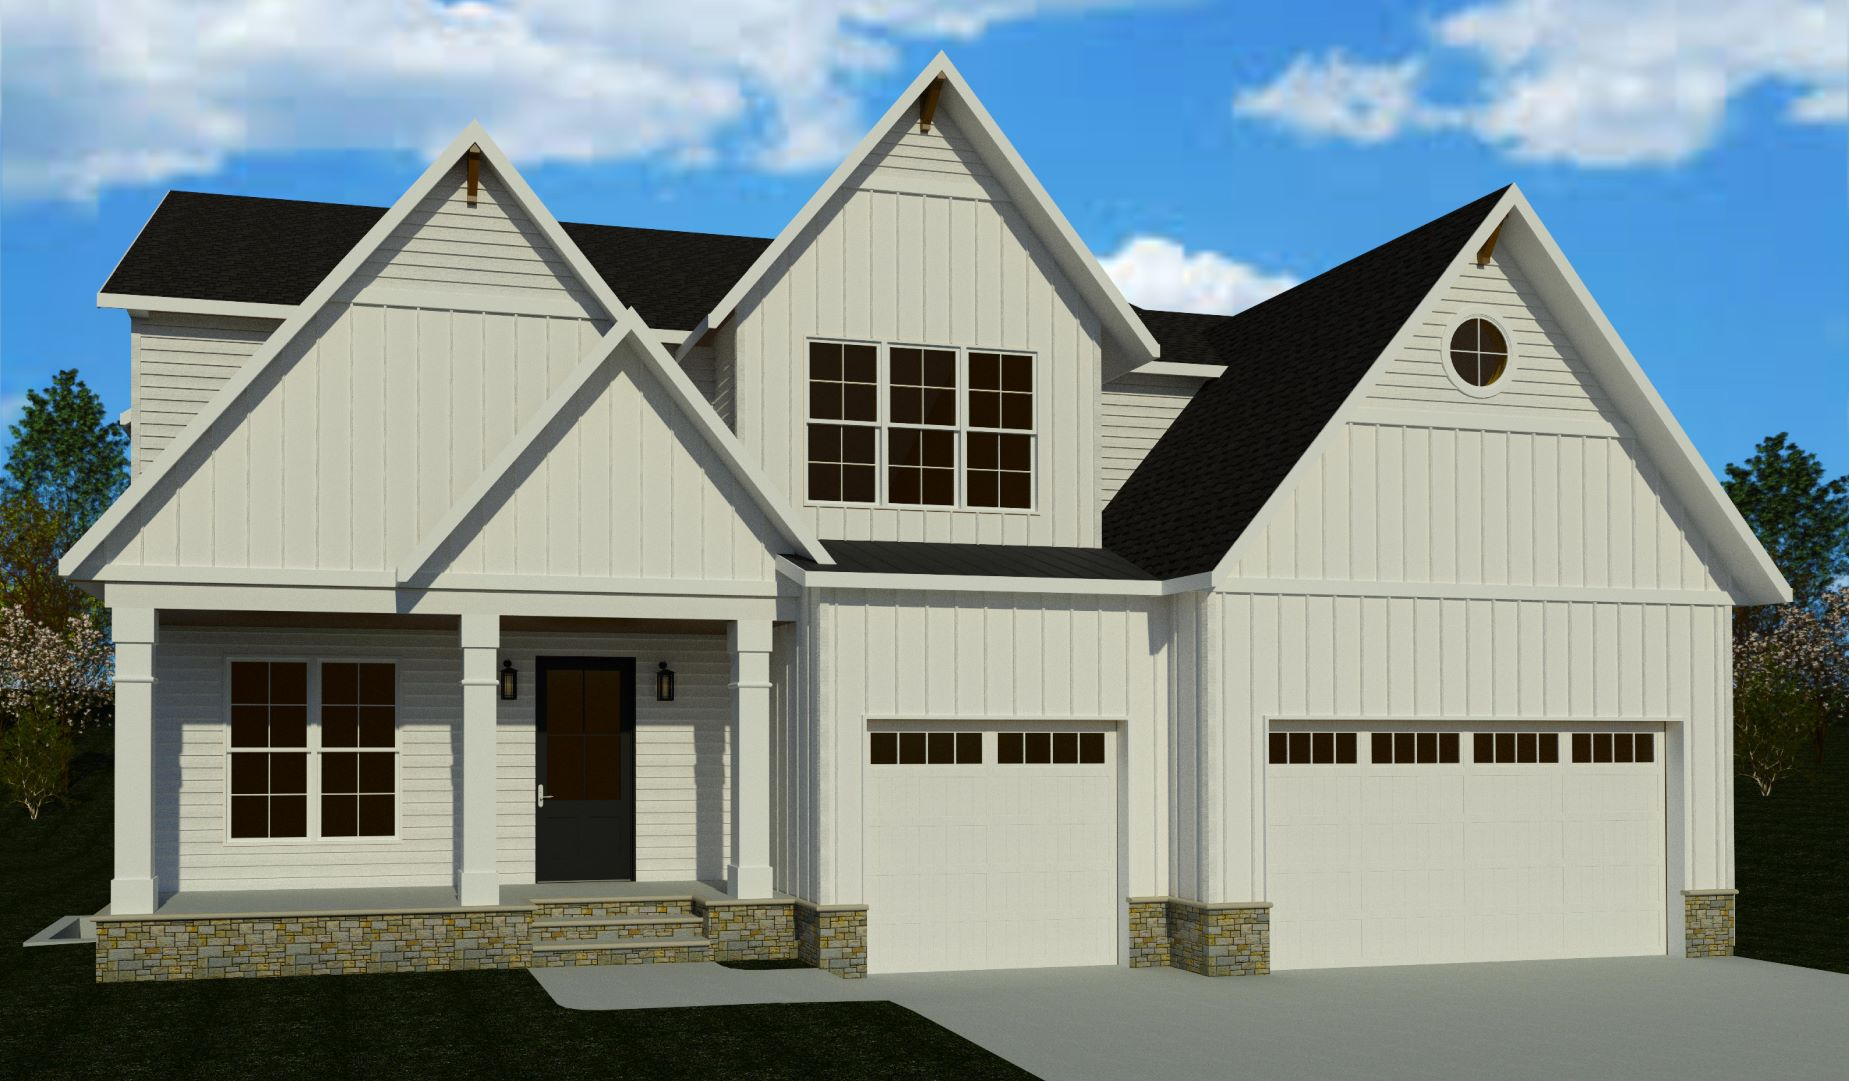 Fargo_Custom_Home_Builder_Two_Story_Design_Lee_2.0.jpg